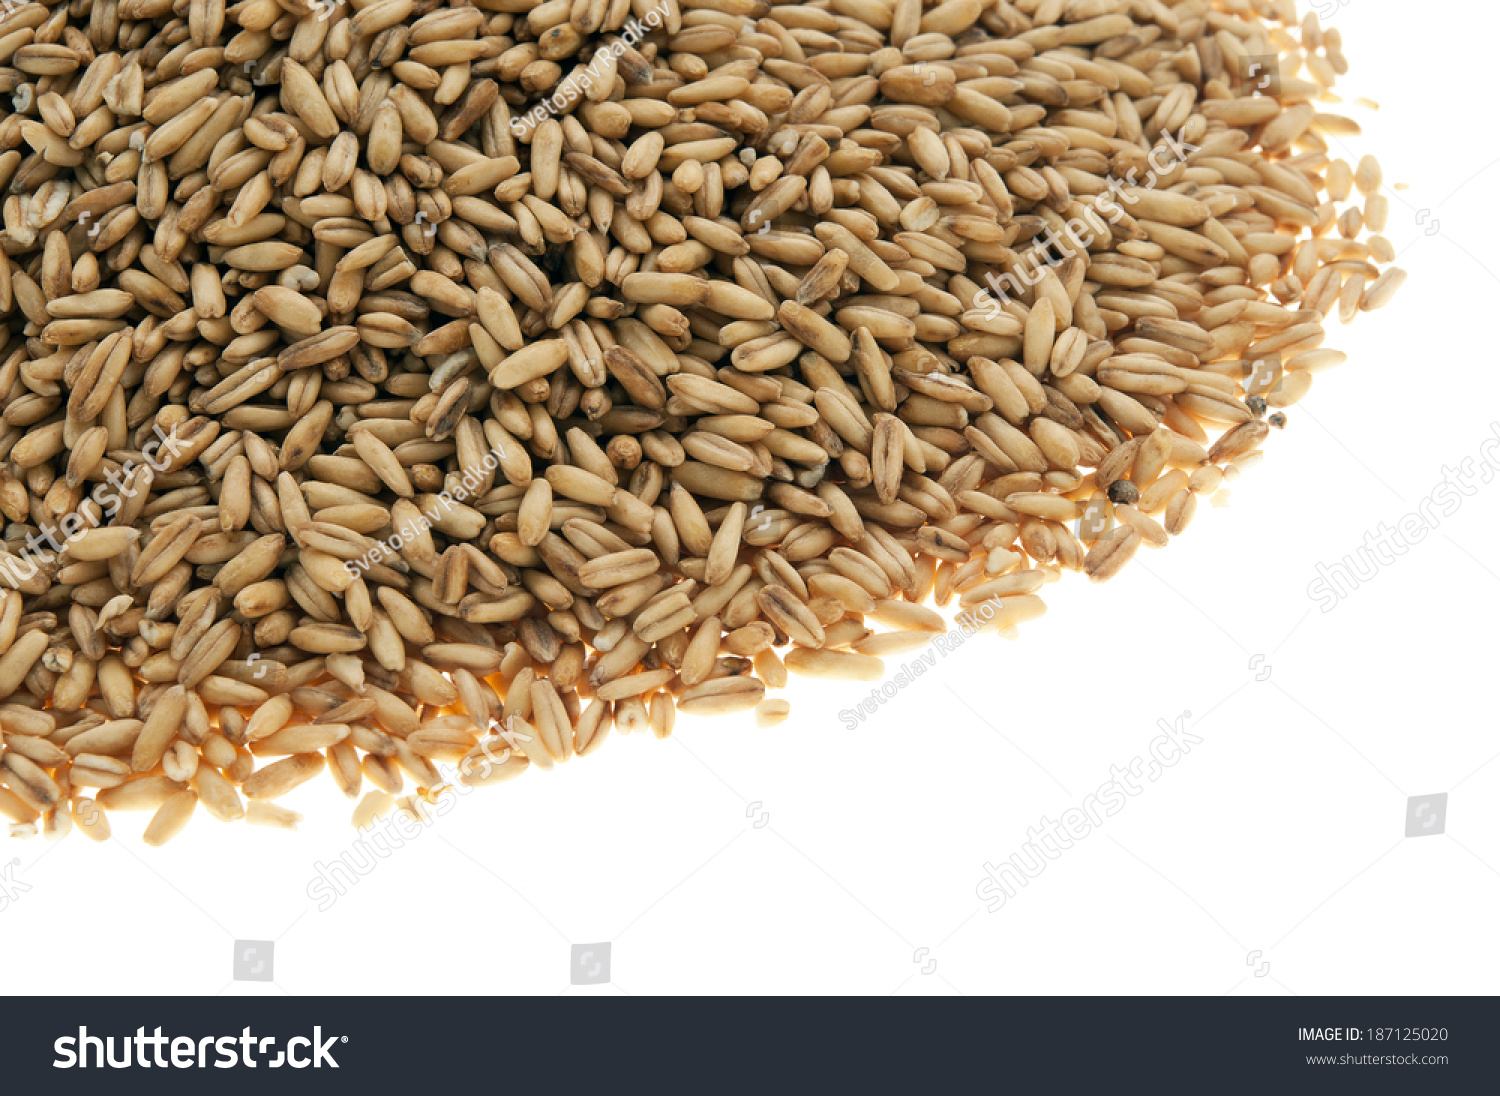 hight resolution of whole oat groats grains kernels seeds berries a nutritious whole grain they are oats from which only the inedible outer hull has been removed